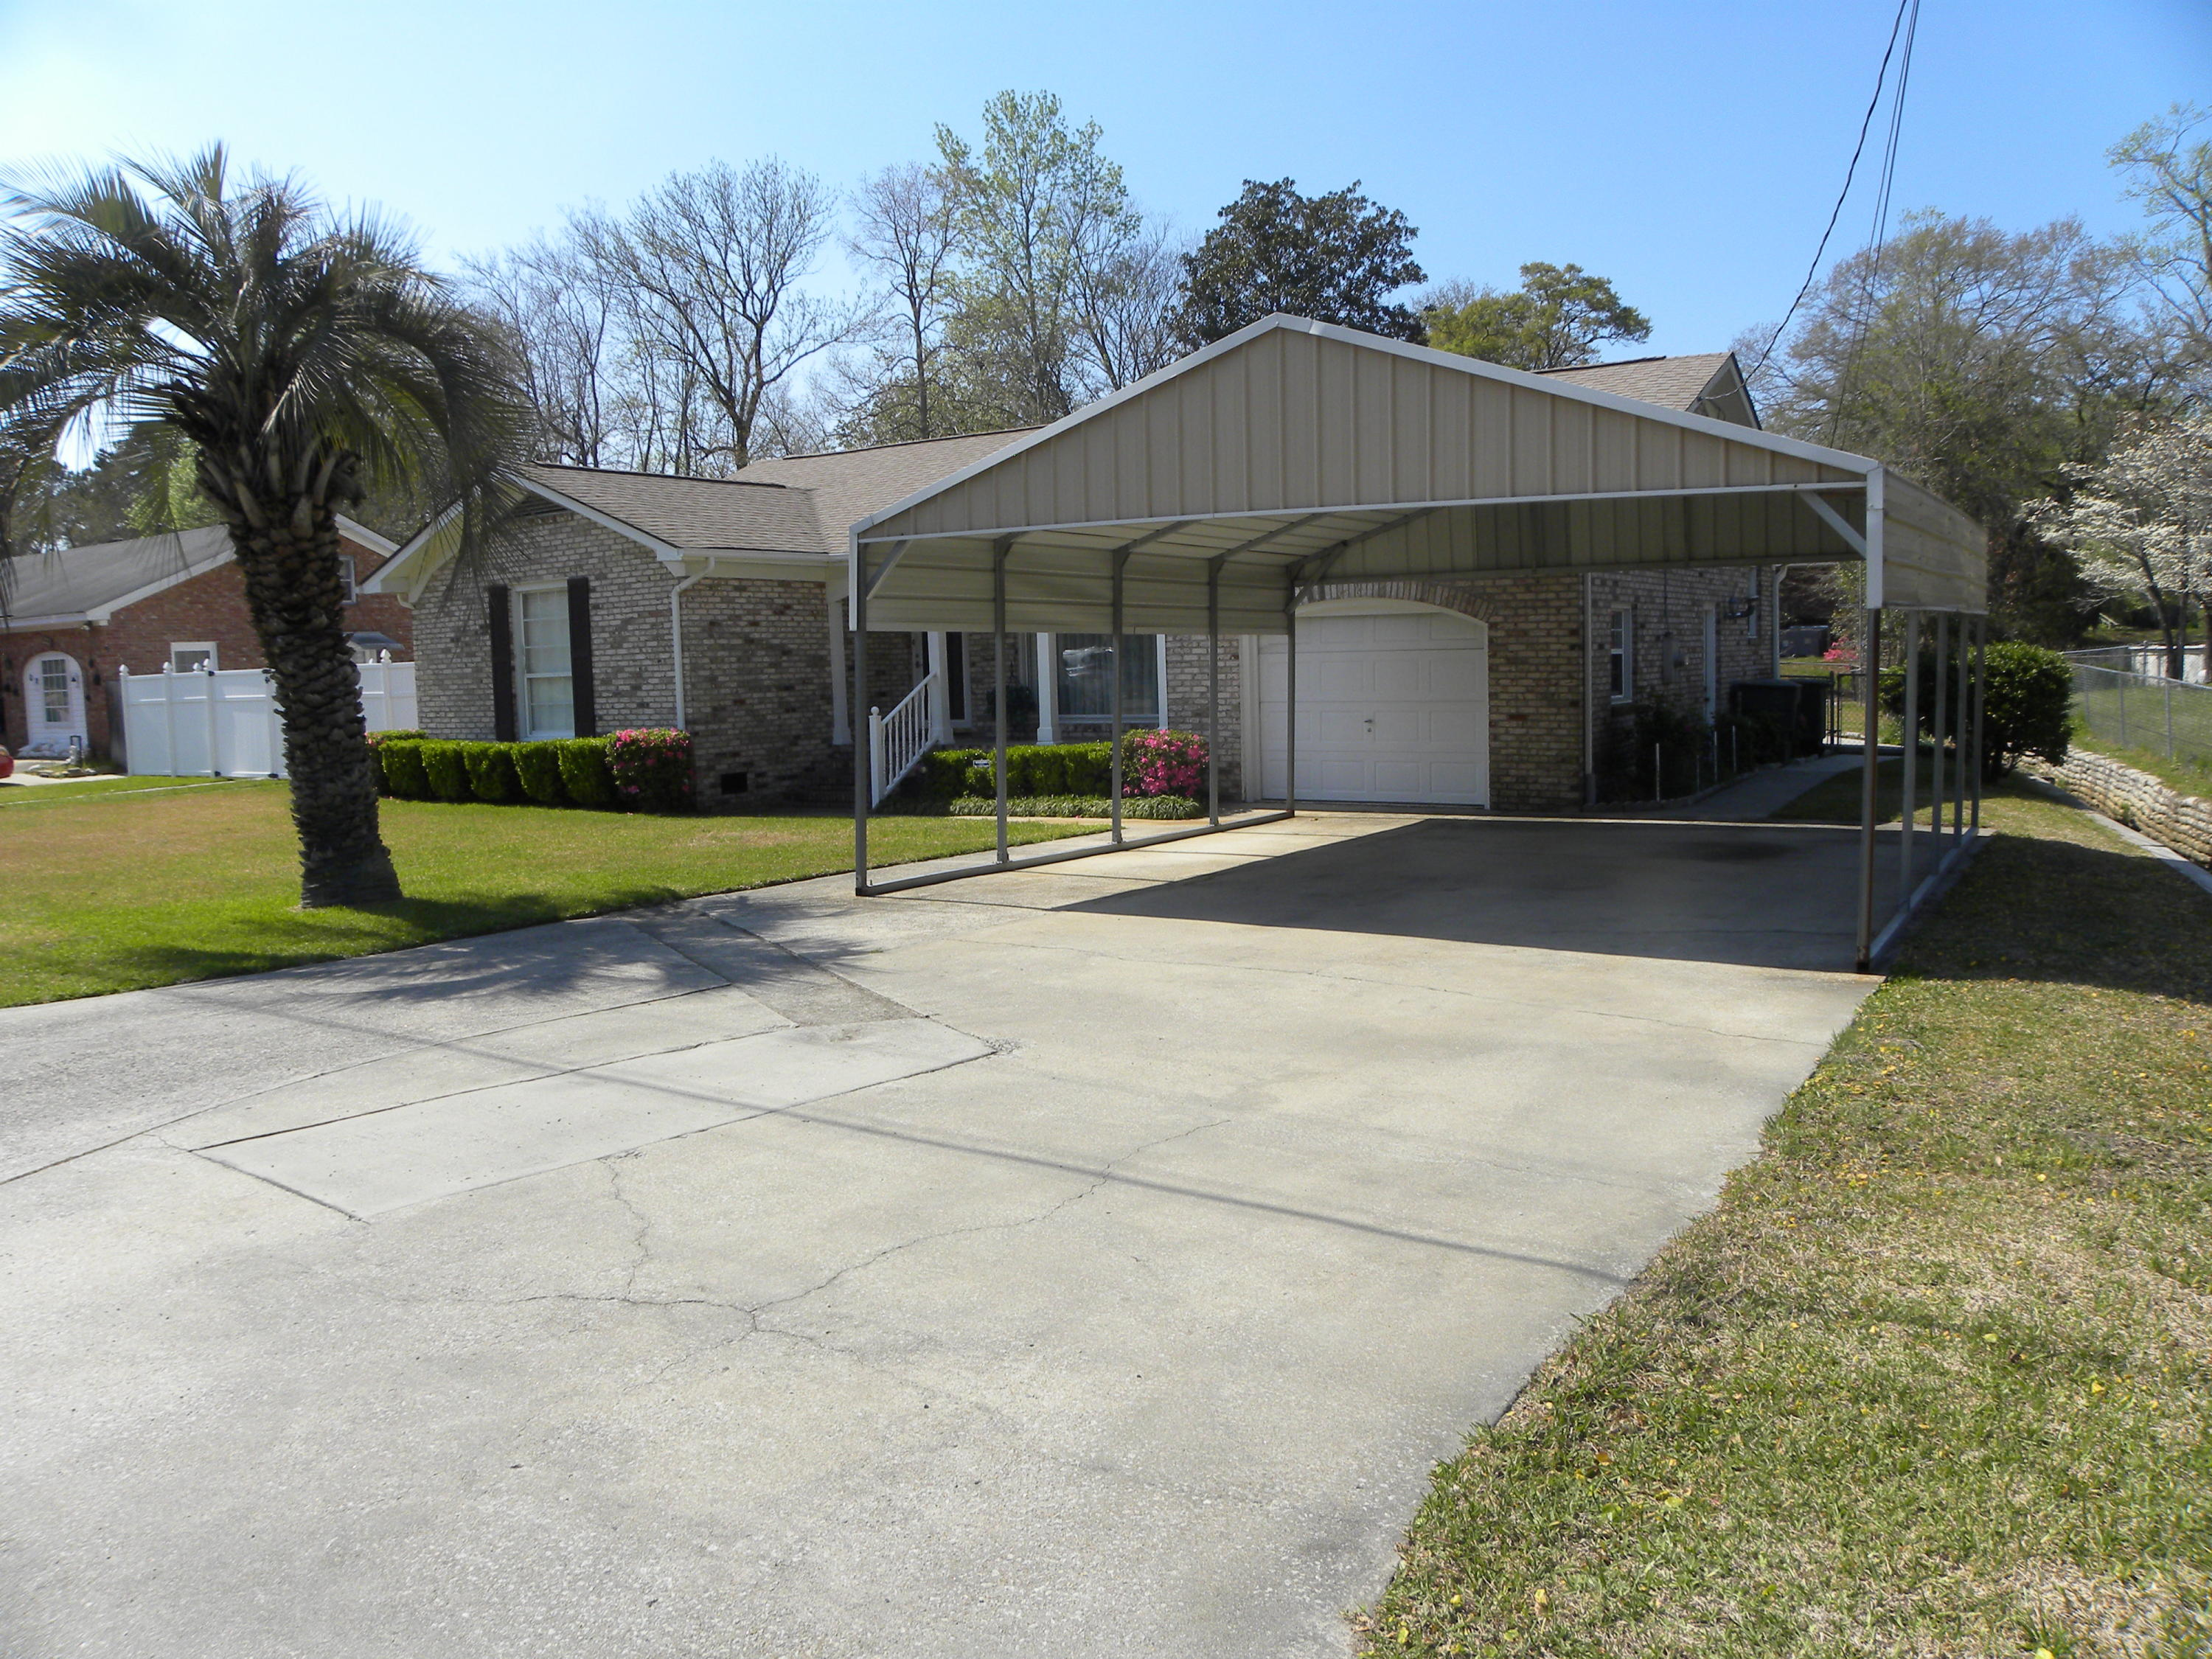 Photo of 1248 Hillside Dr, Hanahan, SC 29410